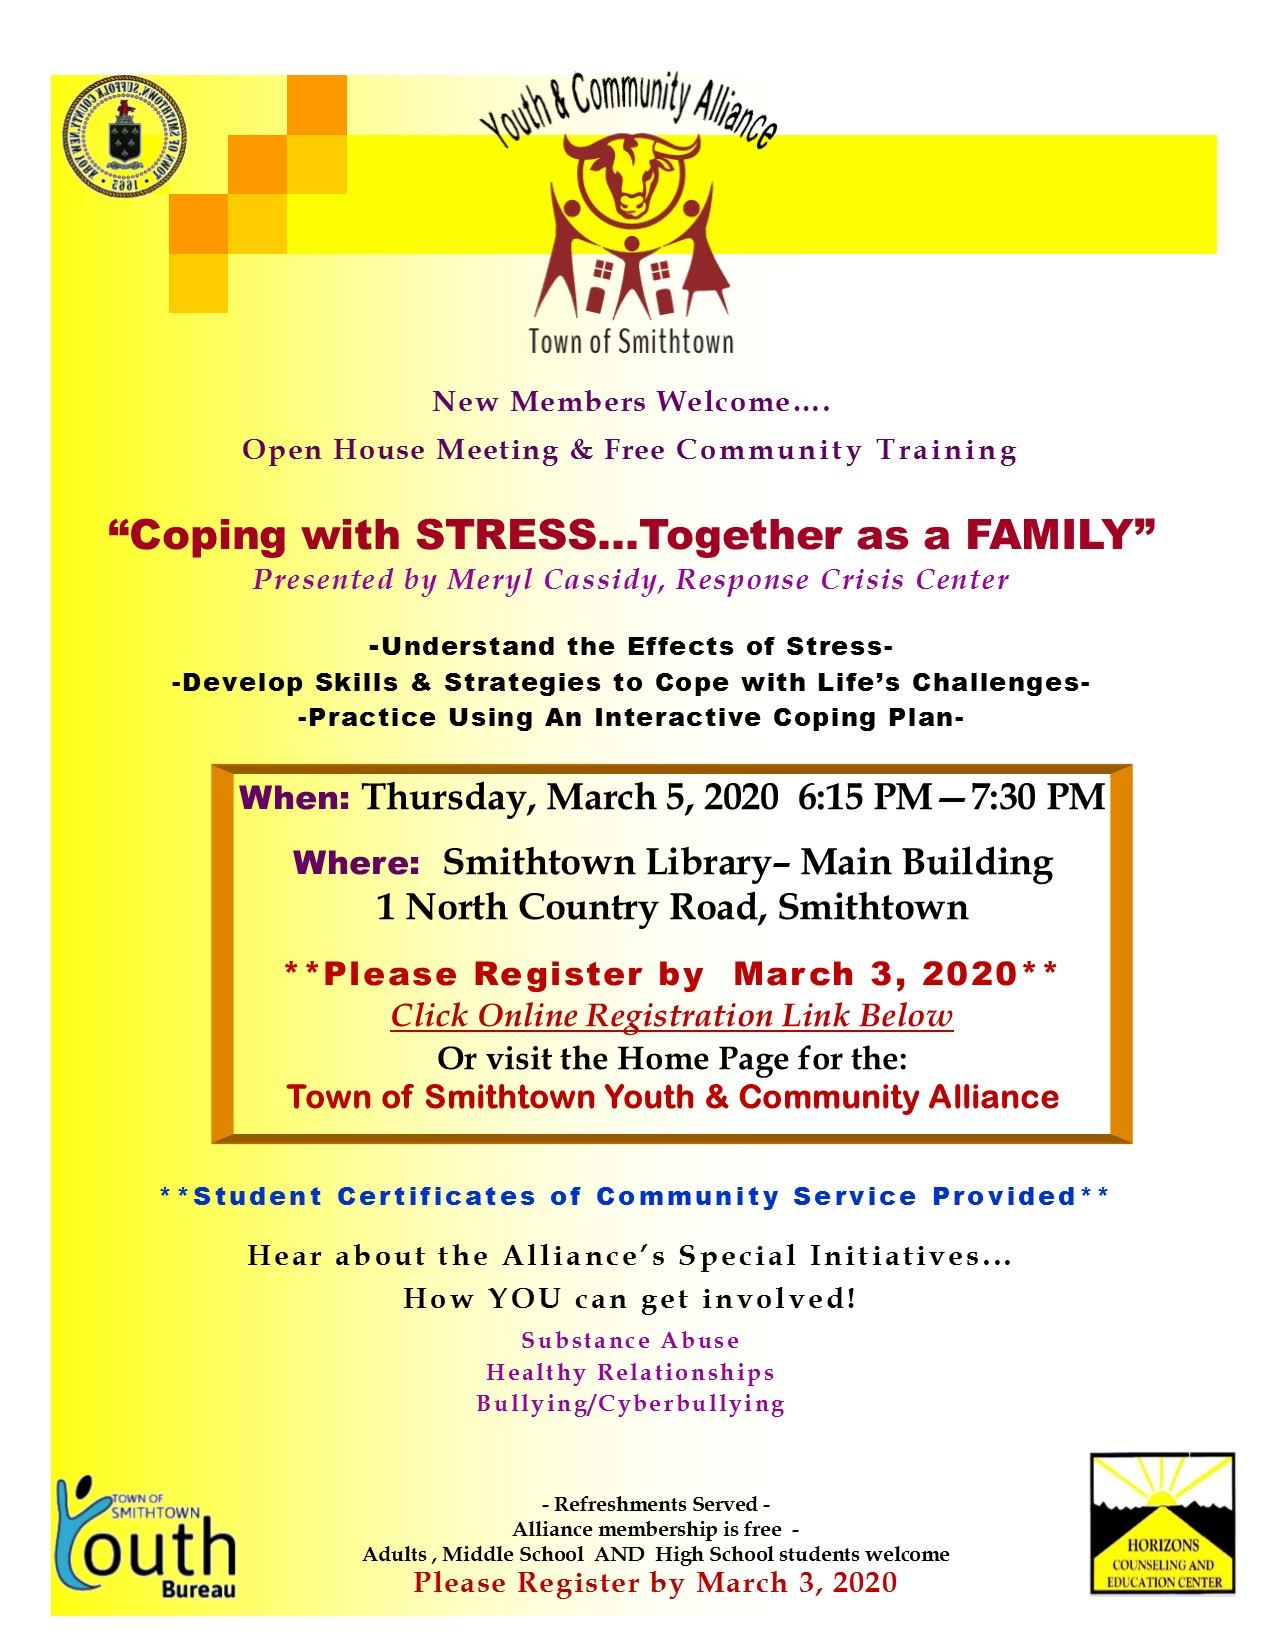 Y  C Alliance Flyer March 5 meeting